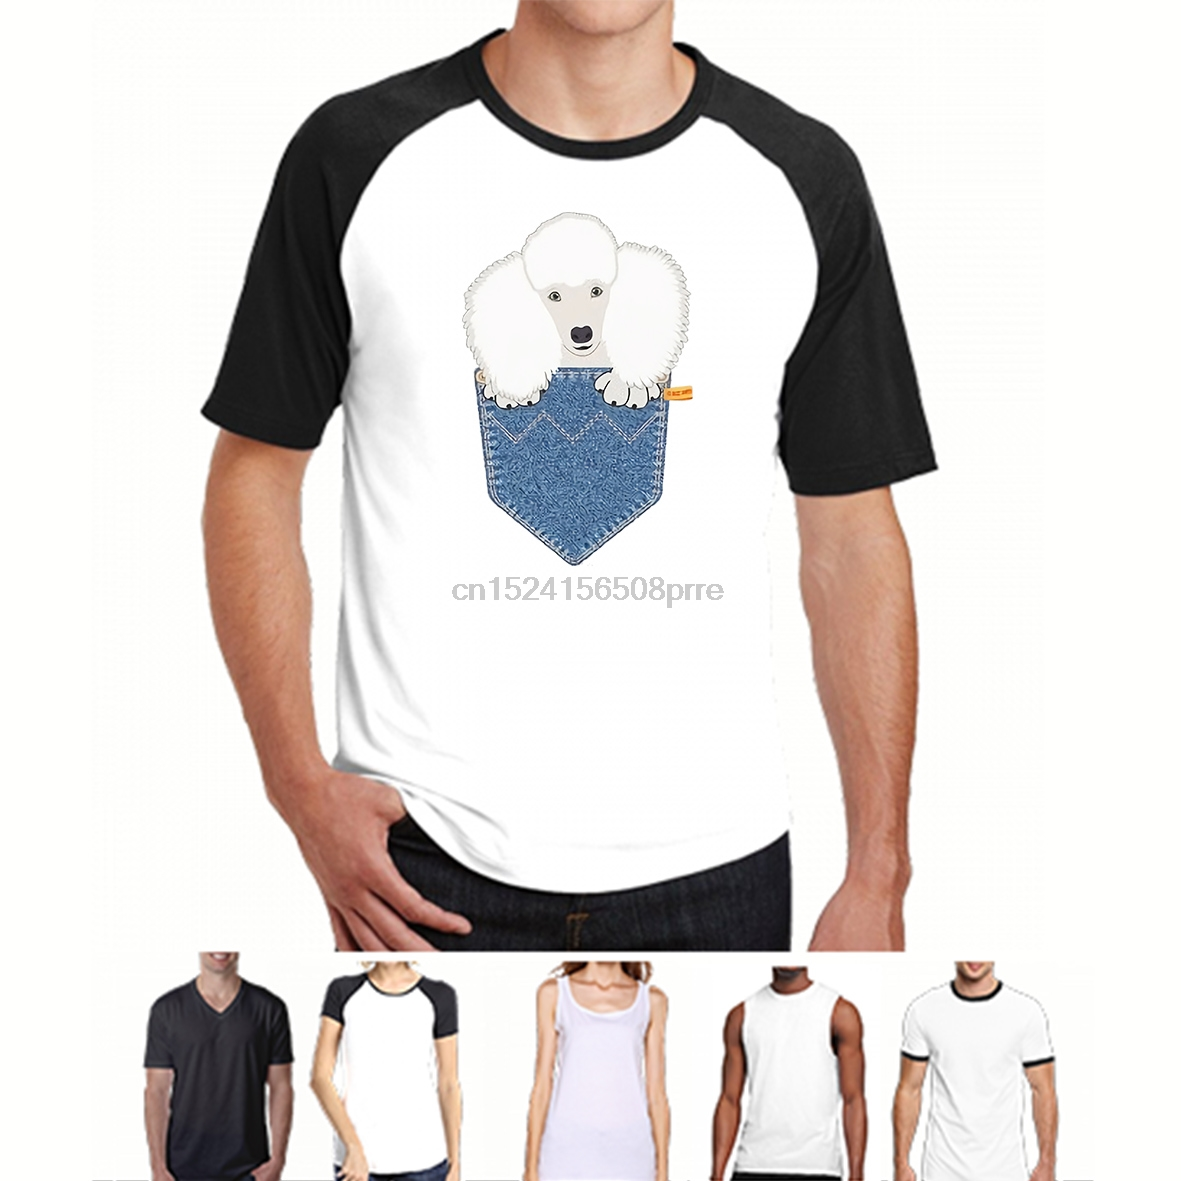 Buy t shirt poodle and get free shipping on AliExpress.com 82c460b2f86d